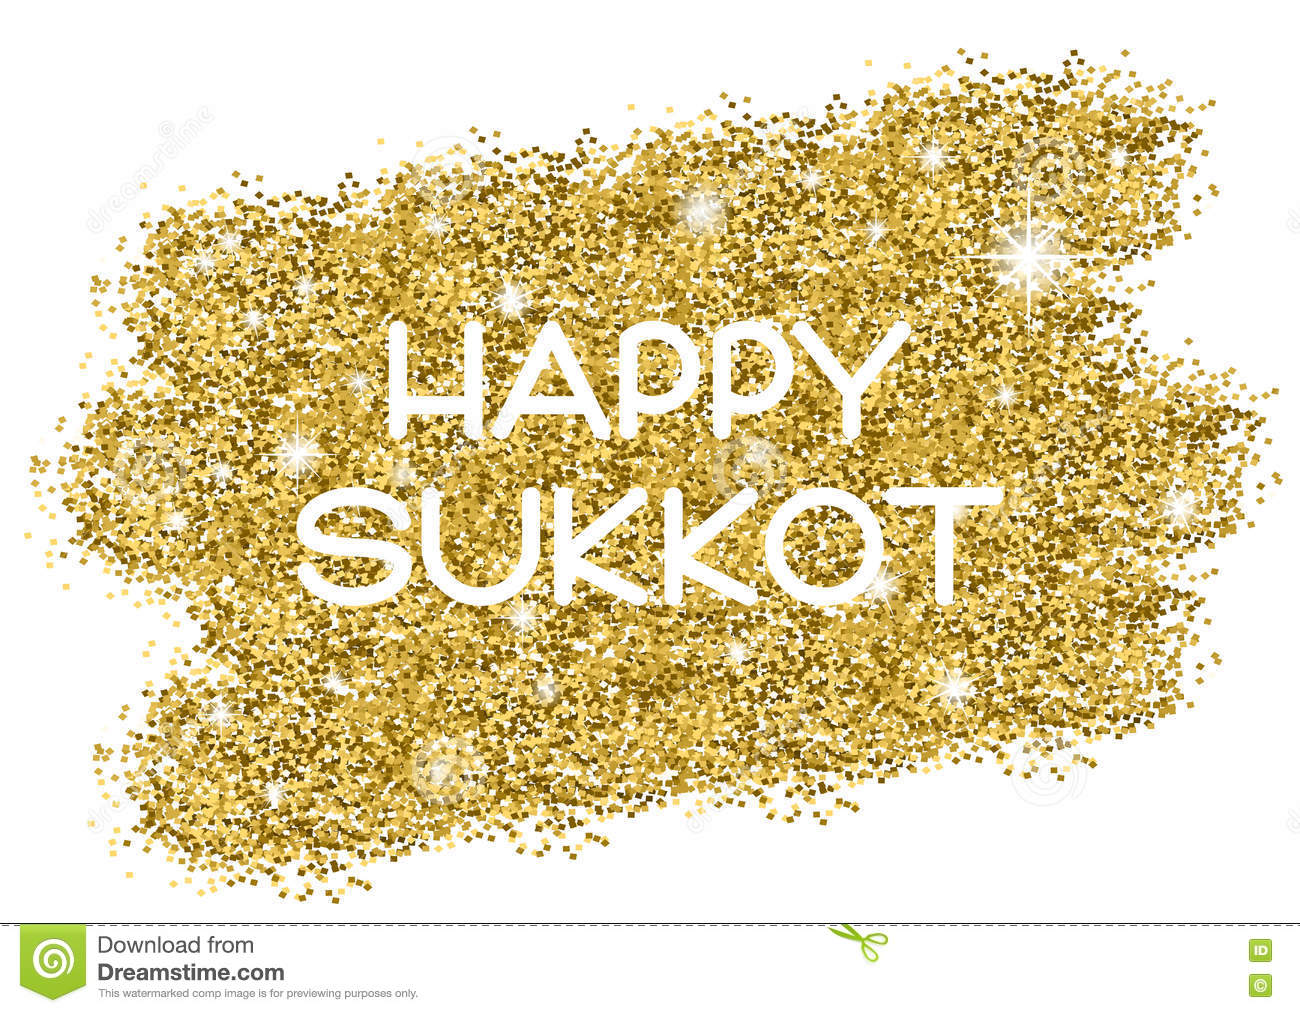 Sukkot Greeting Card Stock Vector Illustration Of Lights 79579895